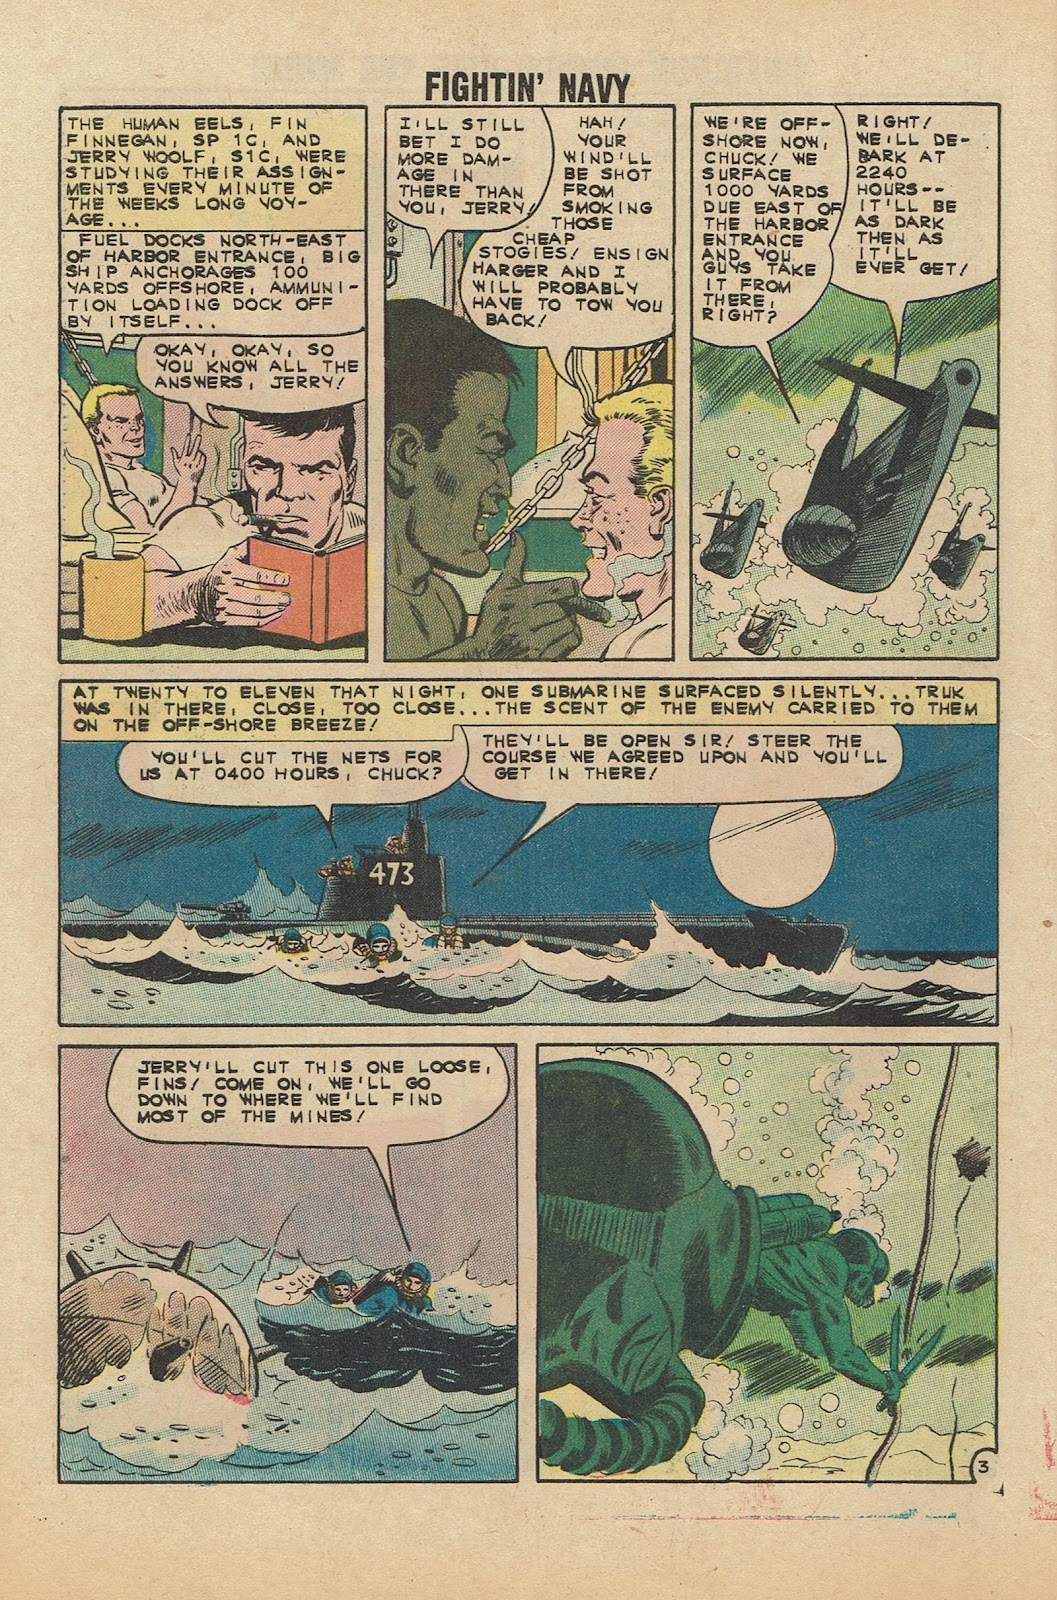 Read online Fightin' Navy comic -  Issue #104 - 28